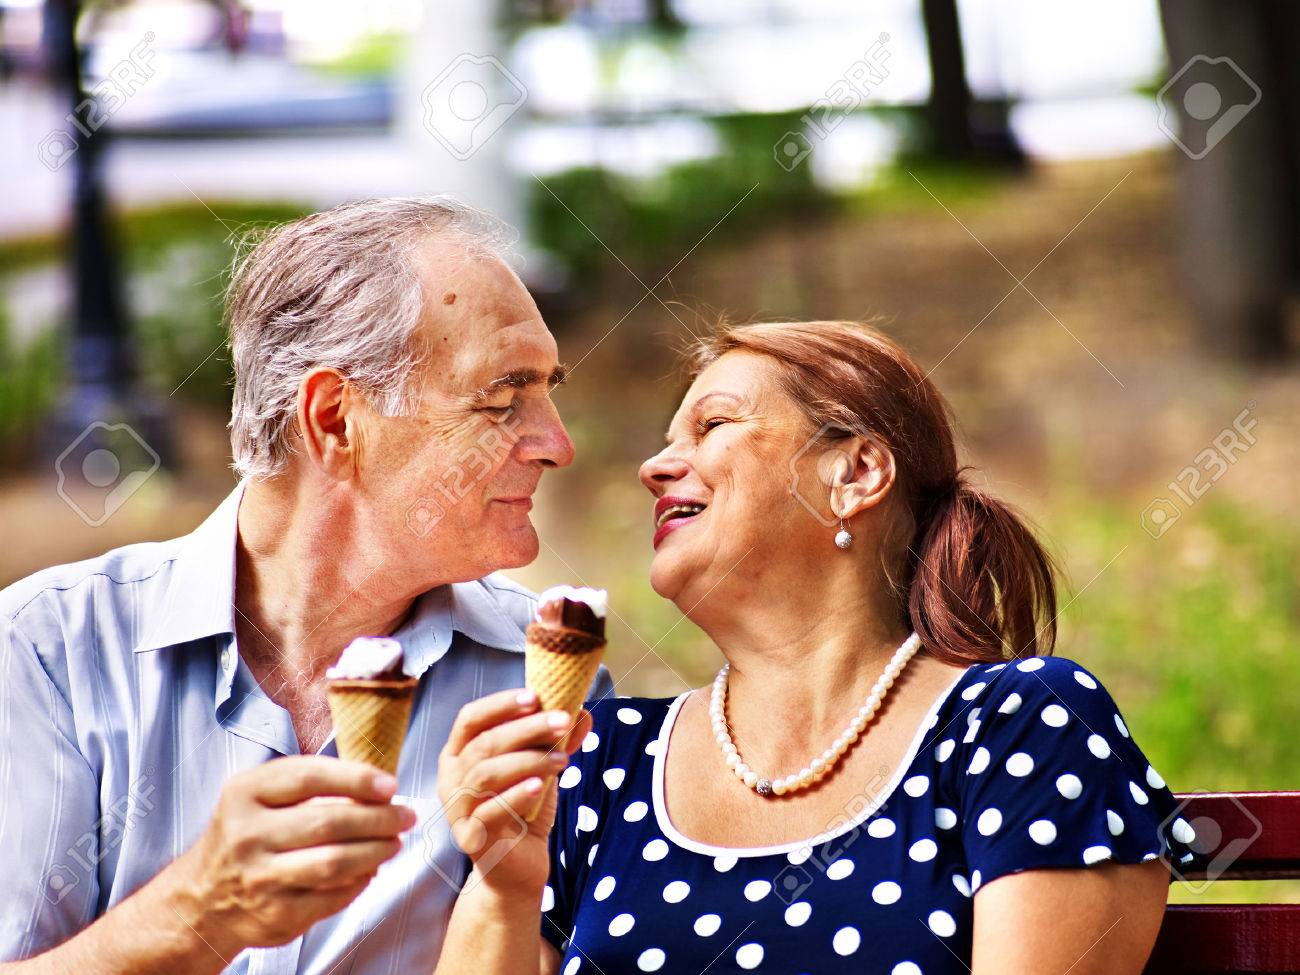 Happy old couple eating ice-cream outdoor. - 28373746